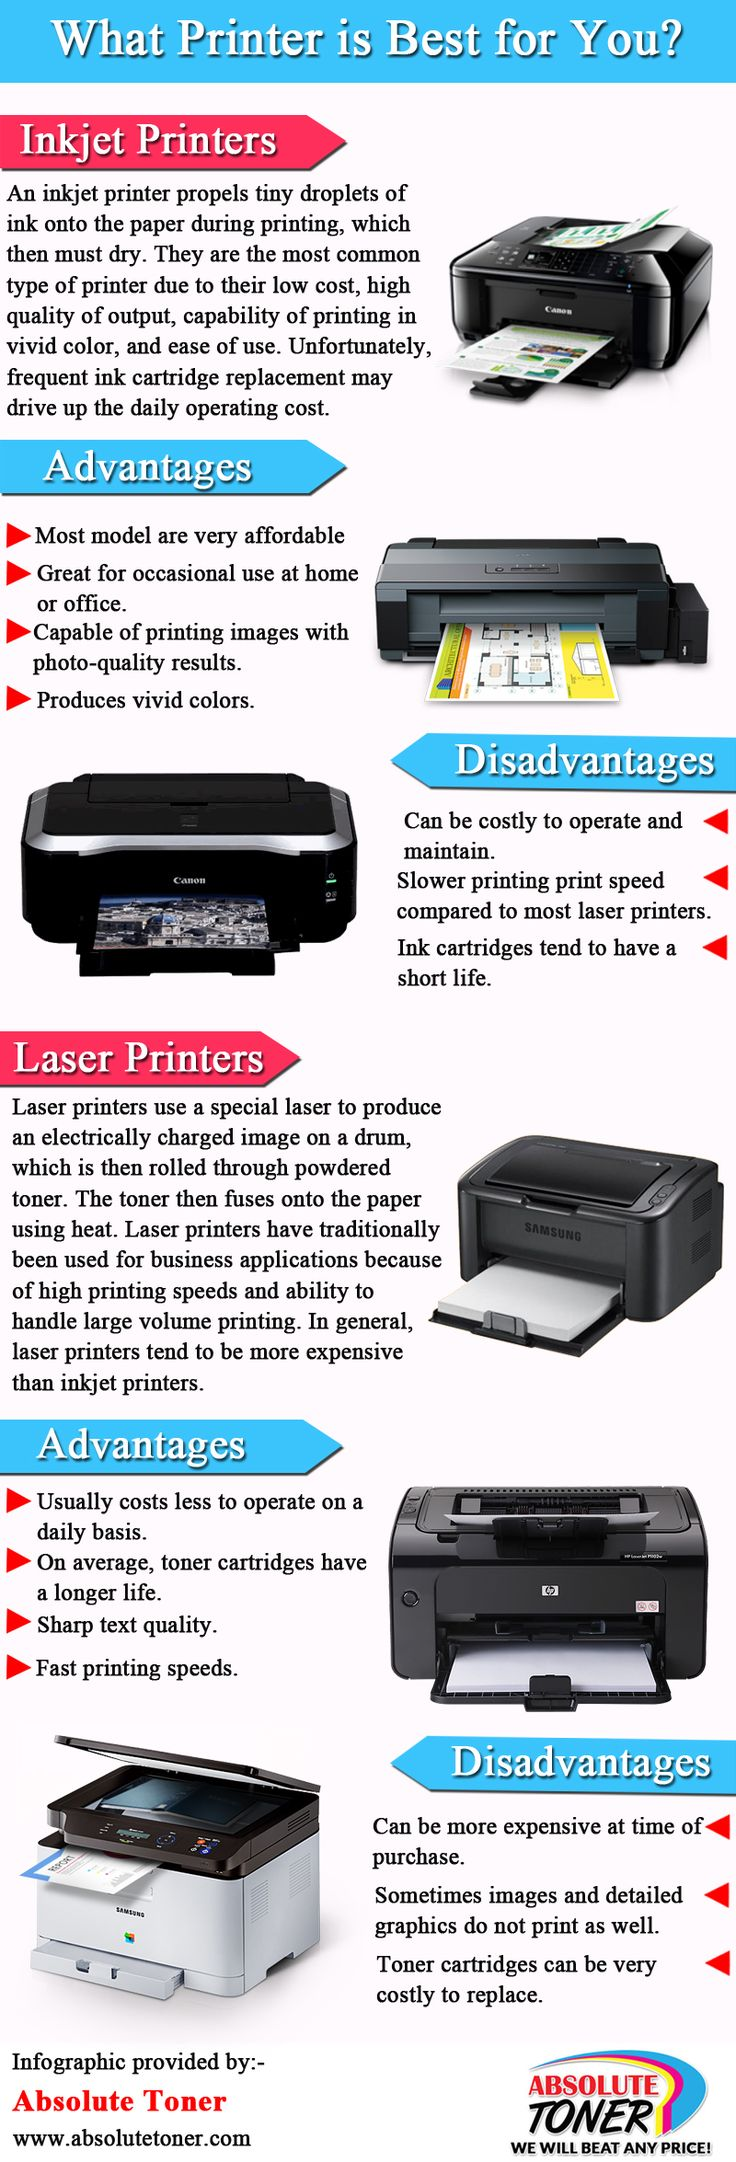 25 best inkjet ink ideas on pinterest jet table saw printers